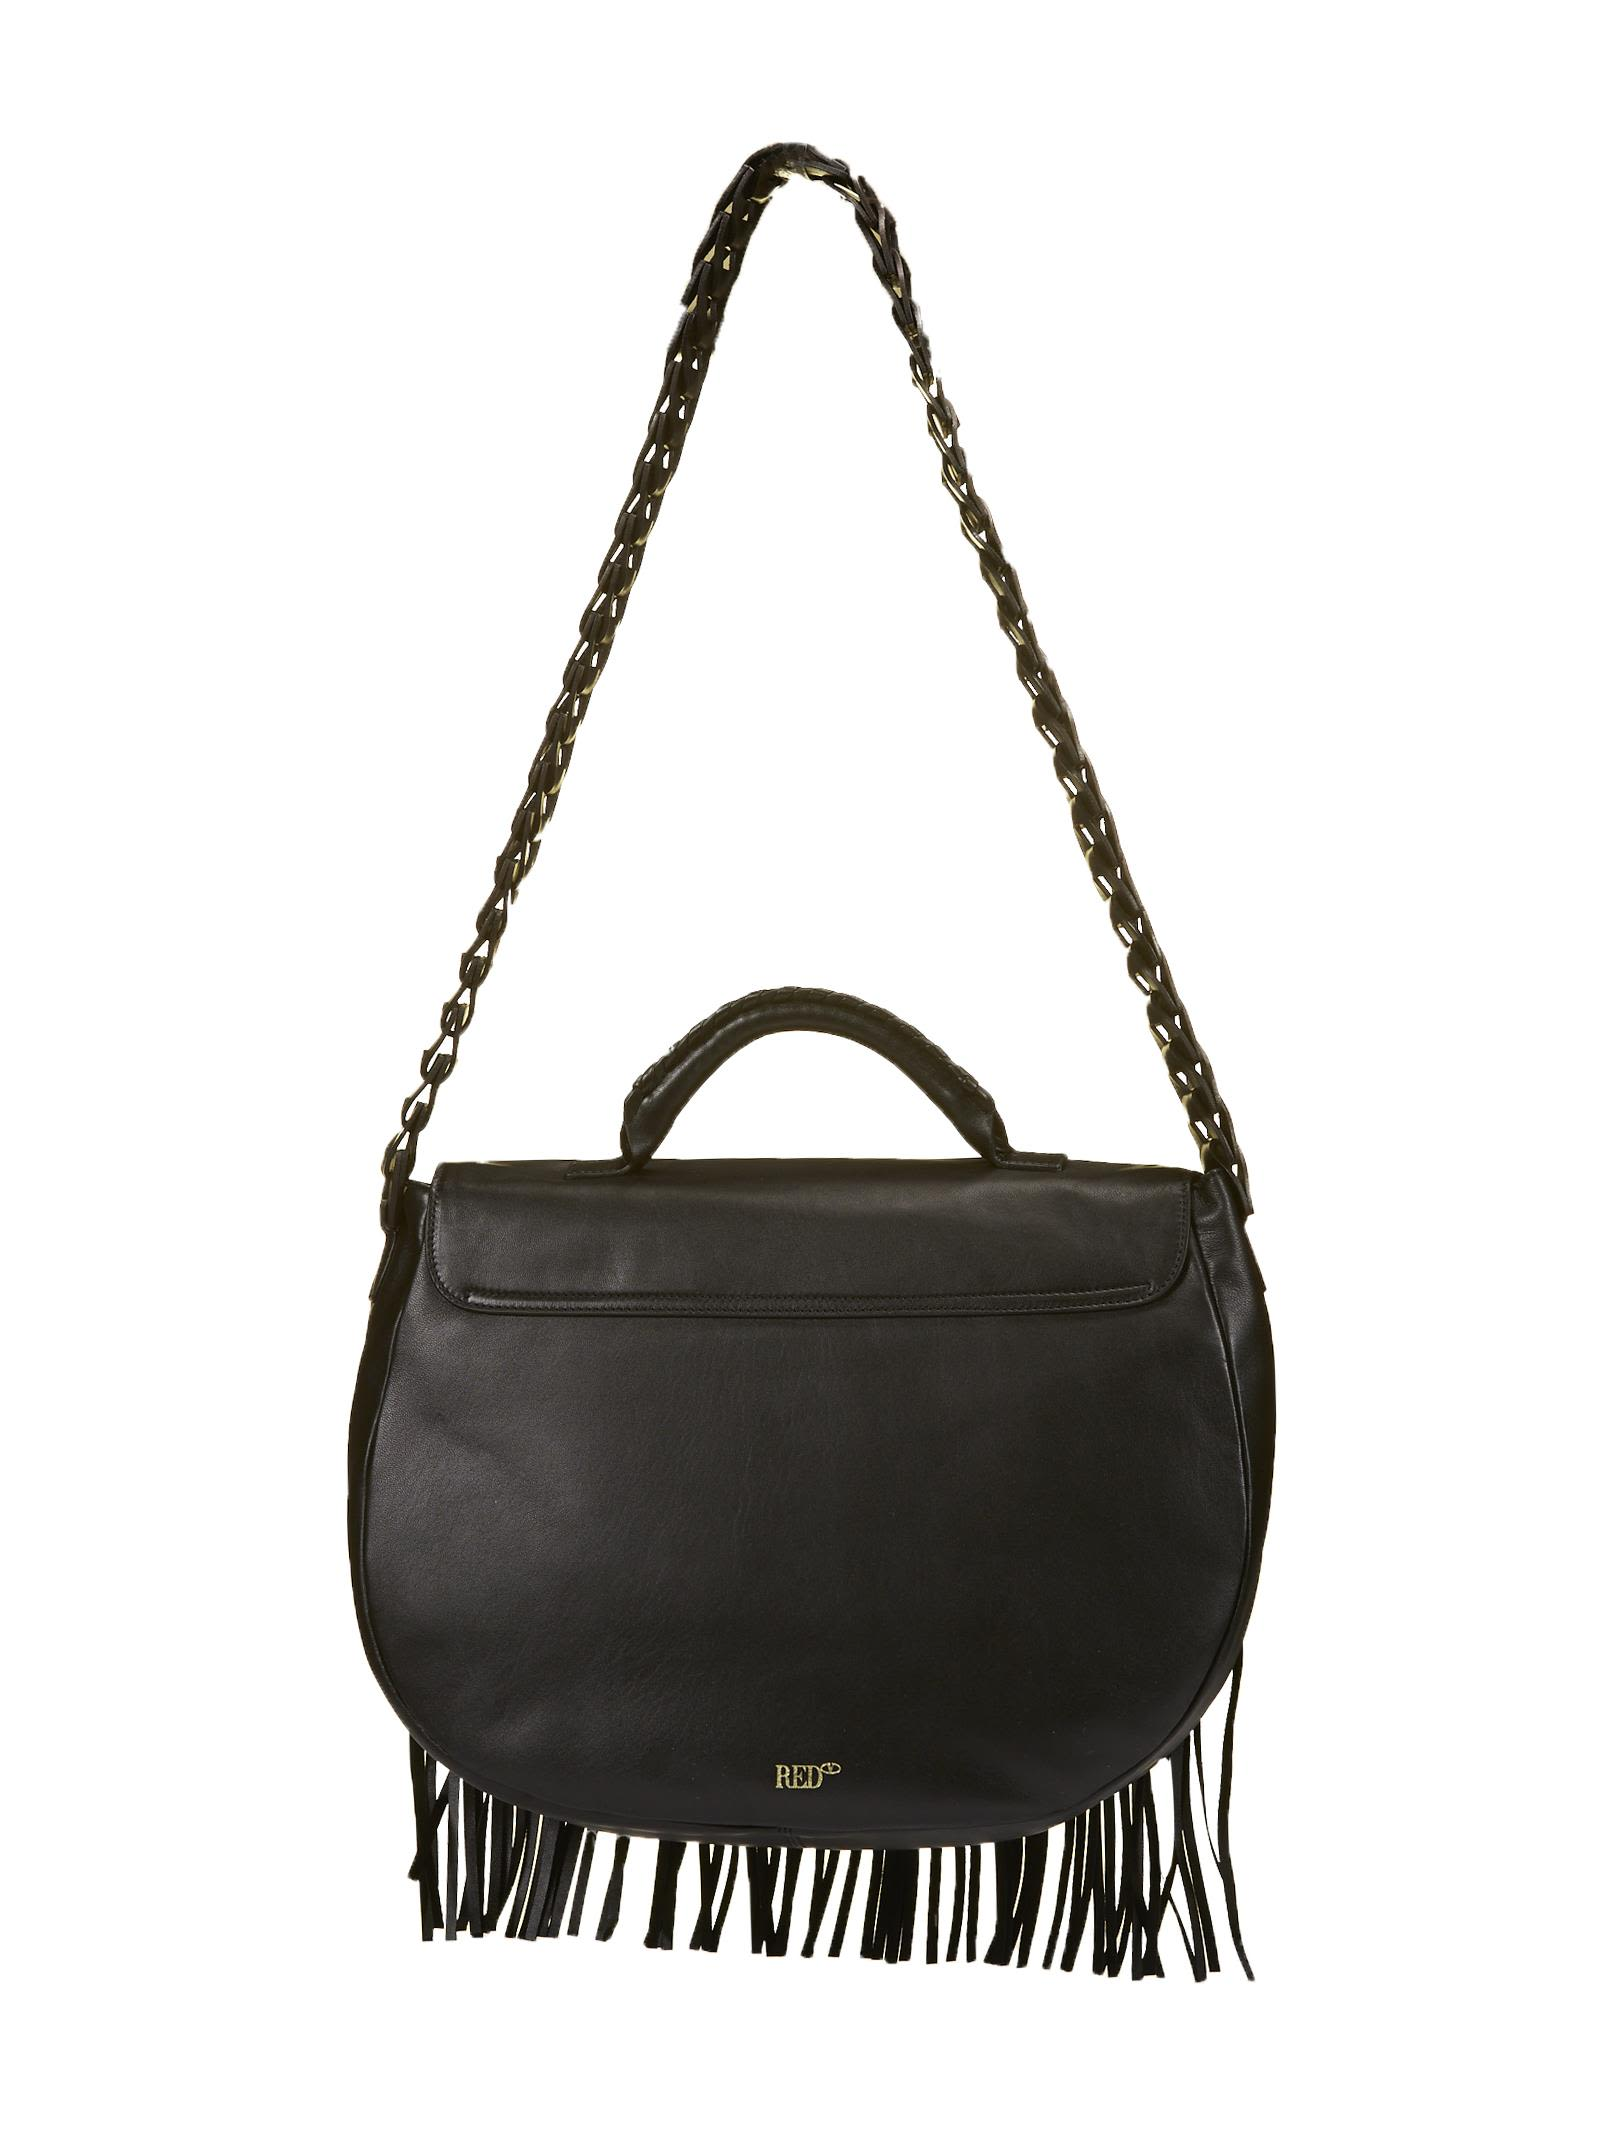 Black fringed leather bag Red Valentino